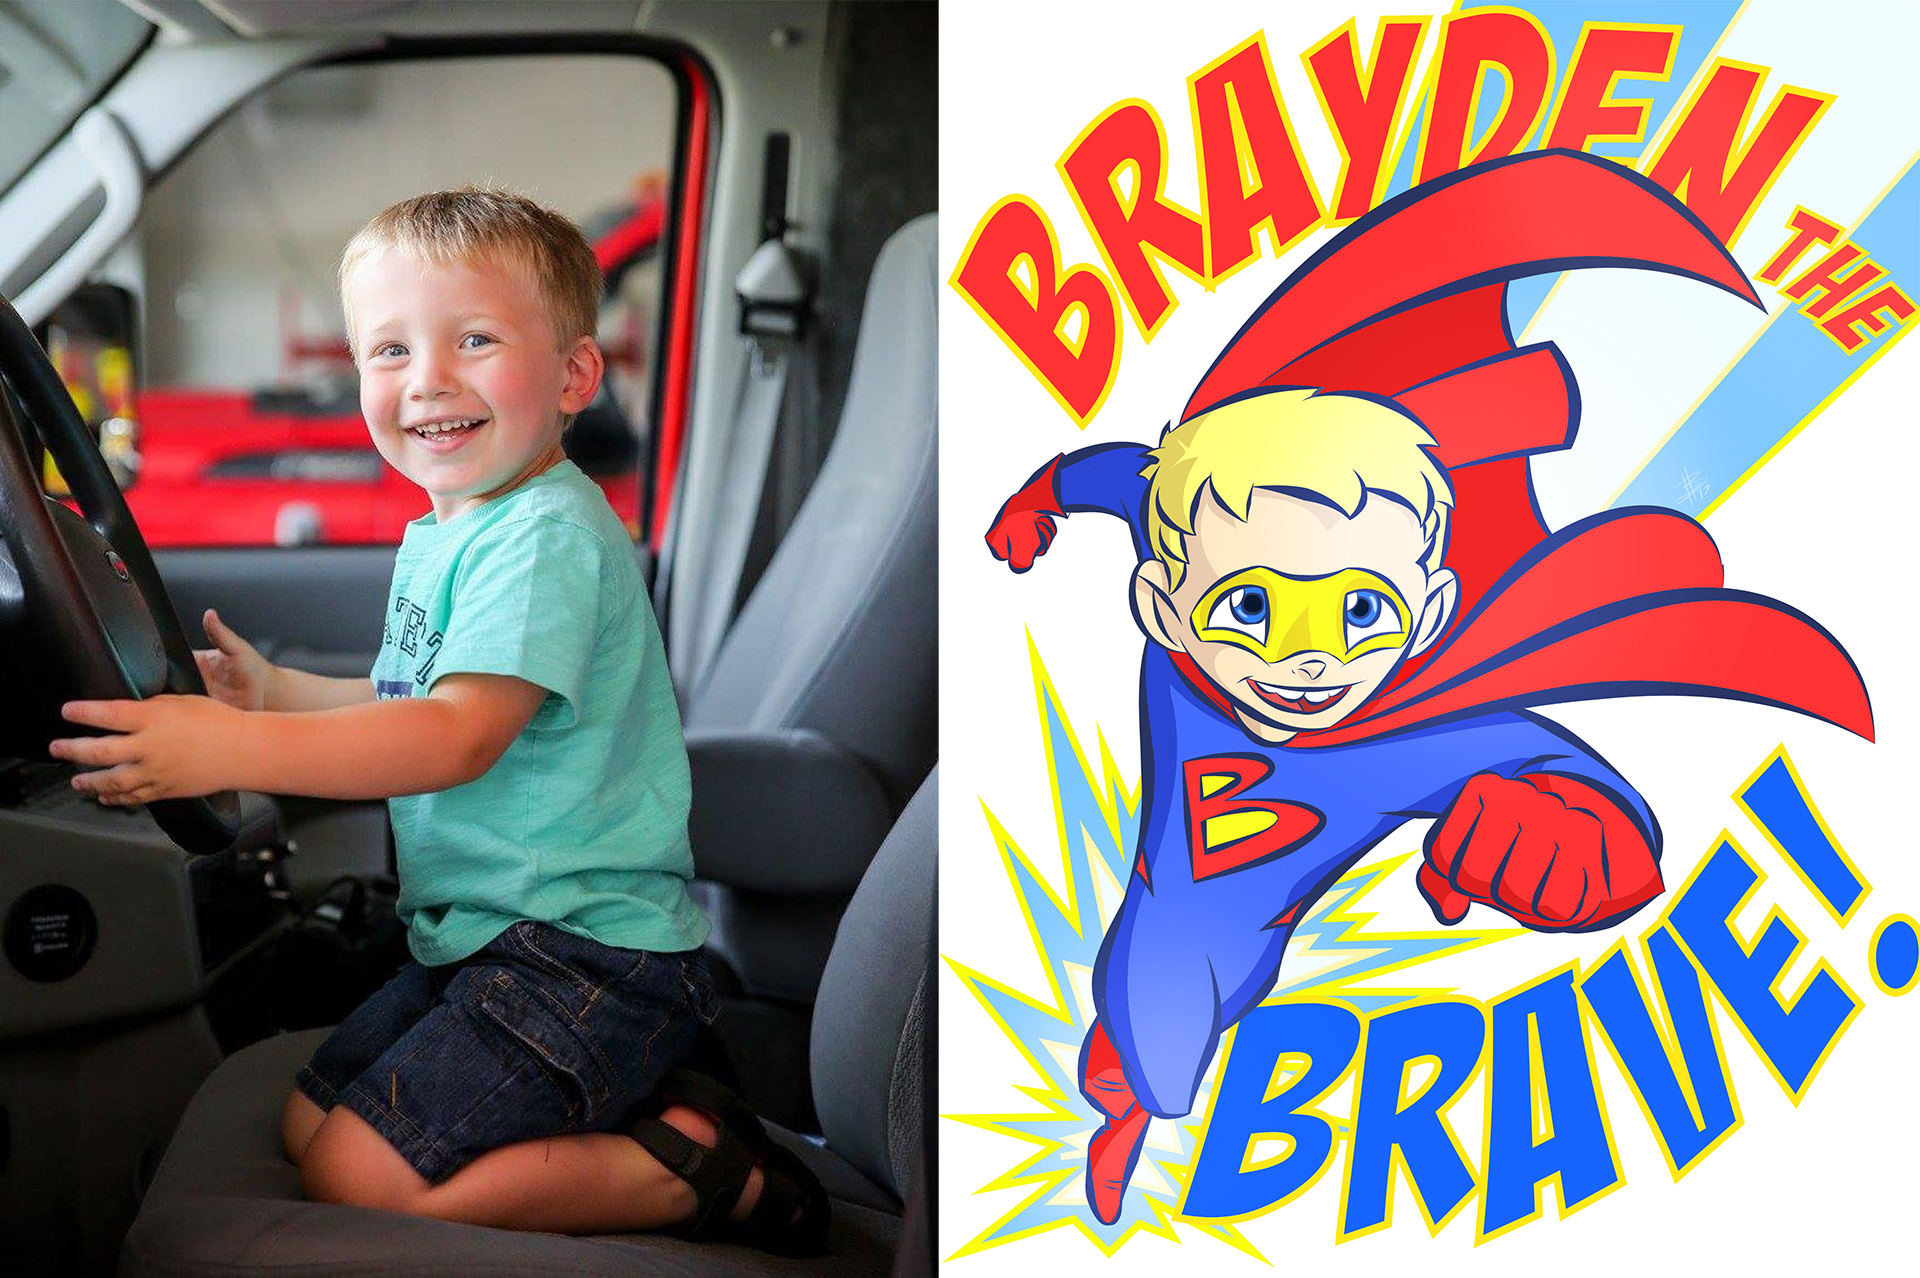 Brayden (Brayden the Brave)